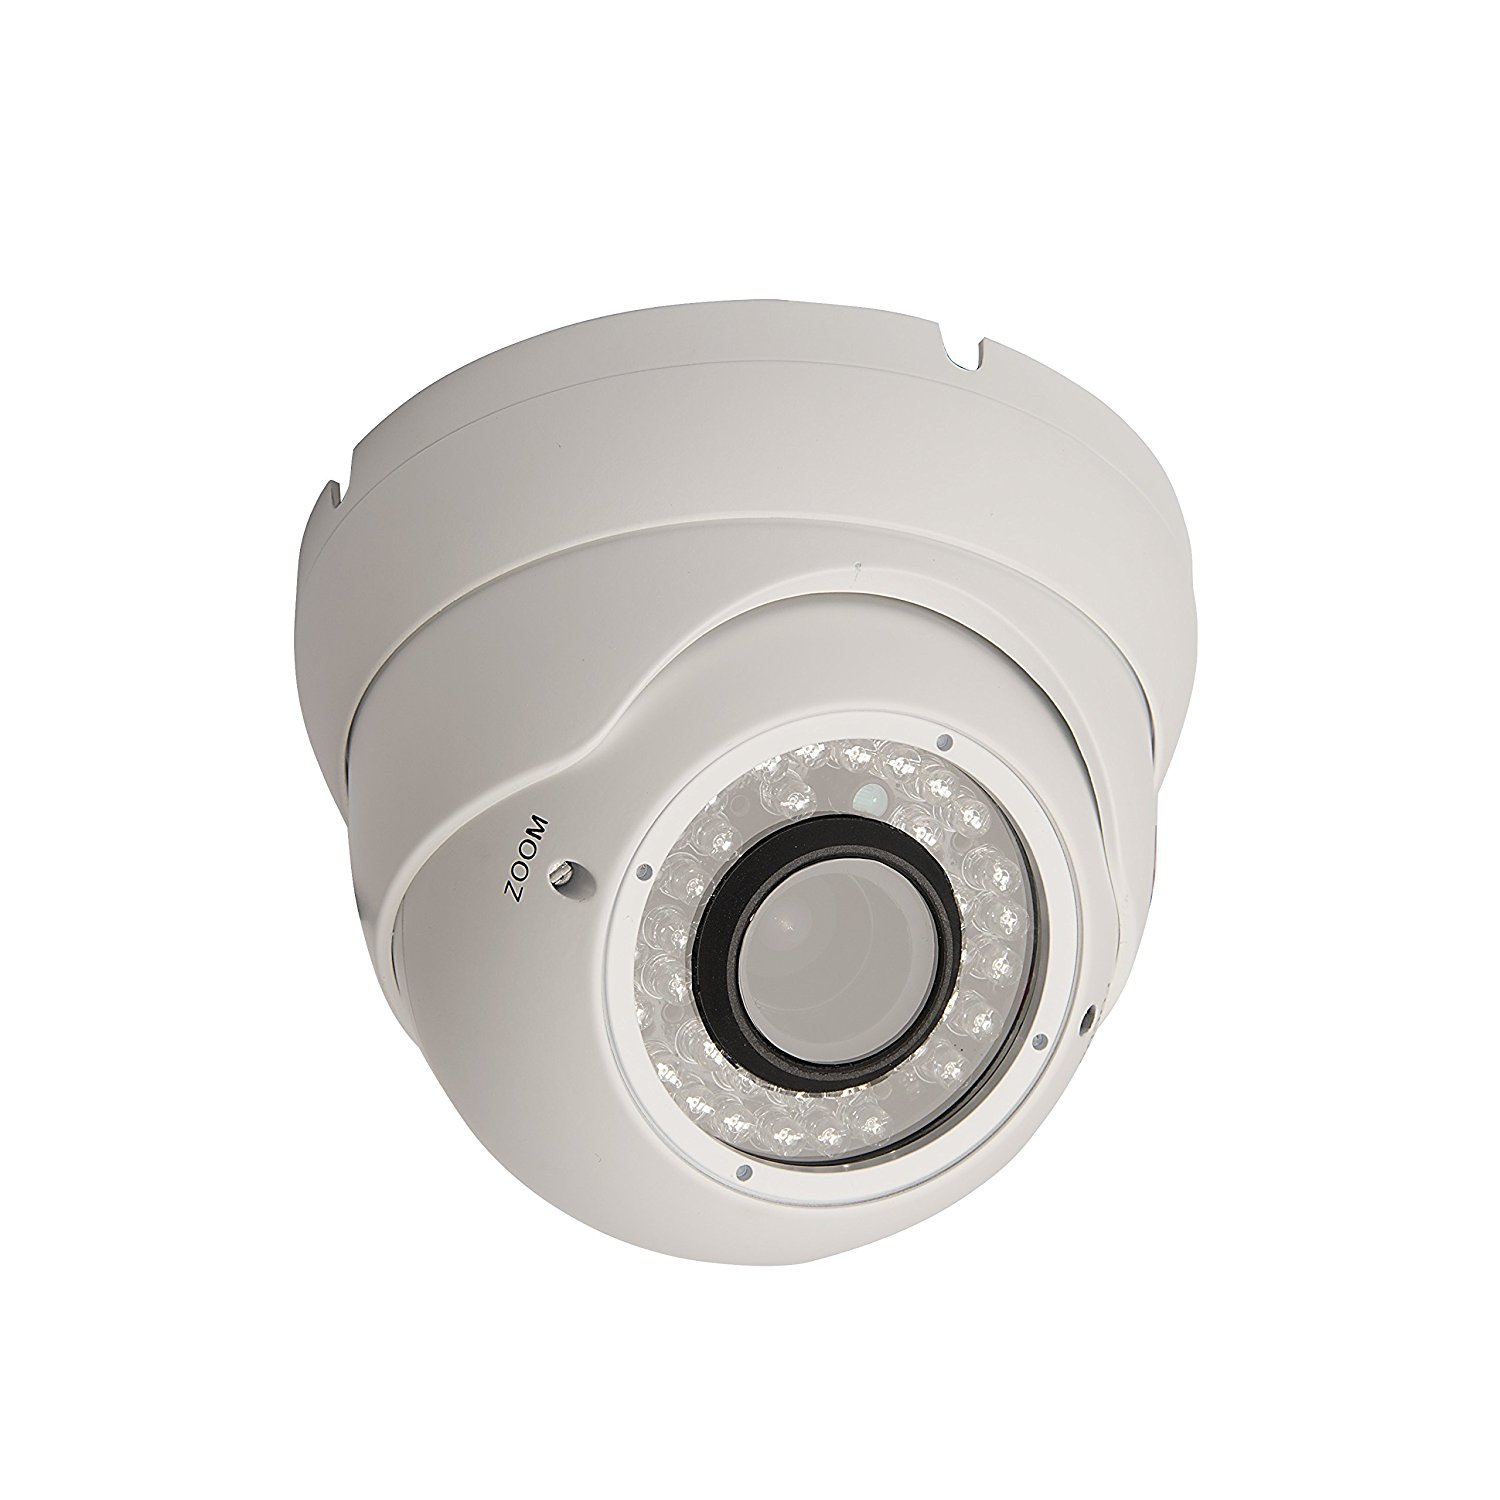 2.0 Mega Pixel Professional Surveillance Security Dome Camera, White Color